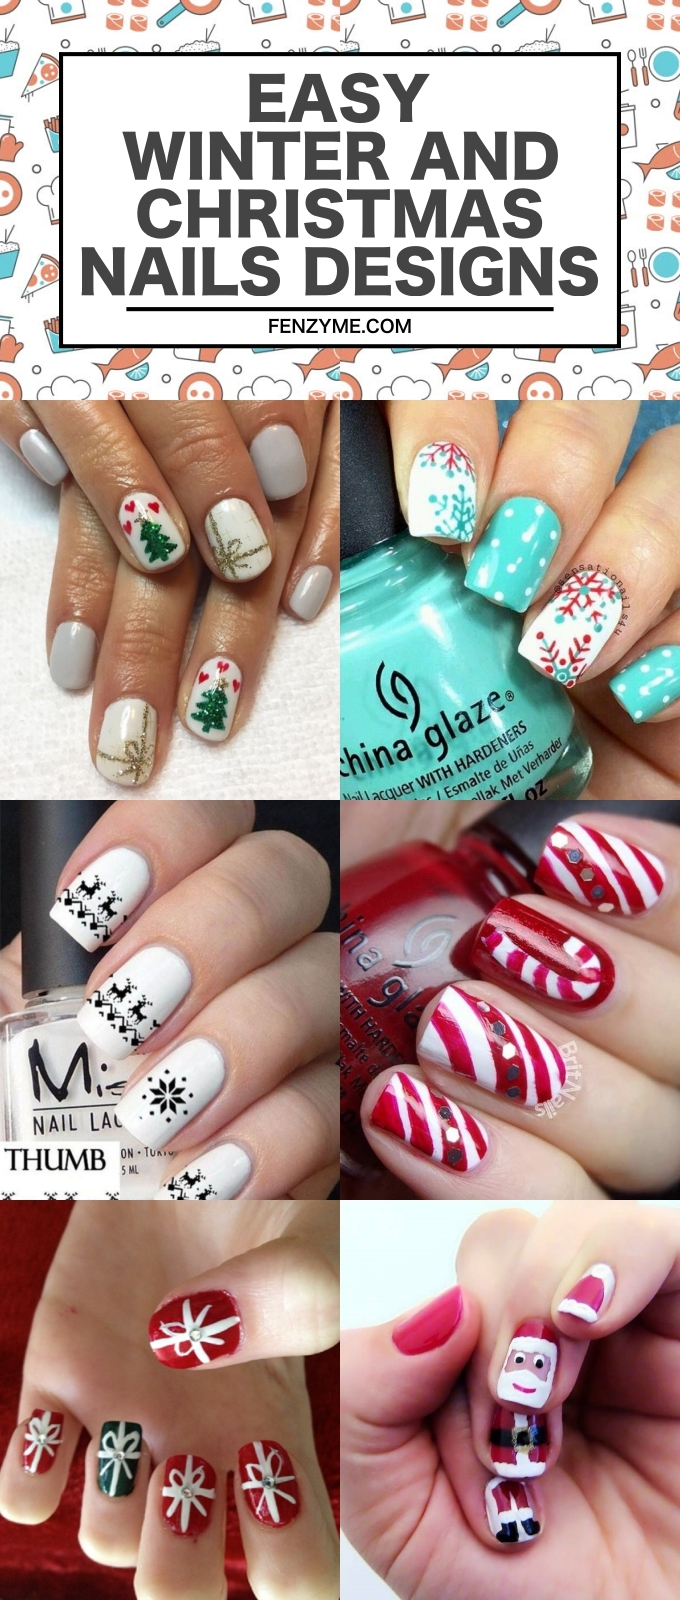 EASY WINTER AND CHRISTMAS NAILS DESIGNS